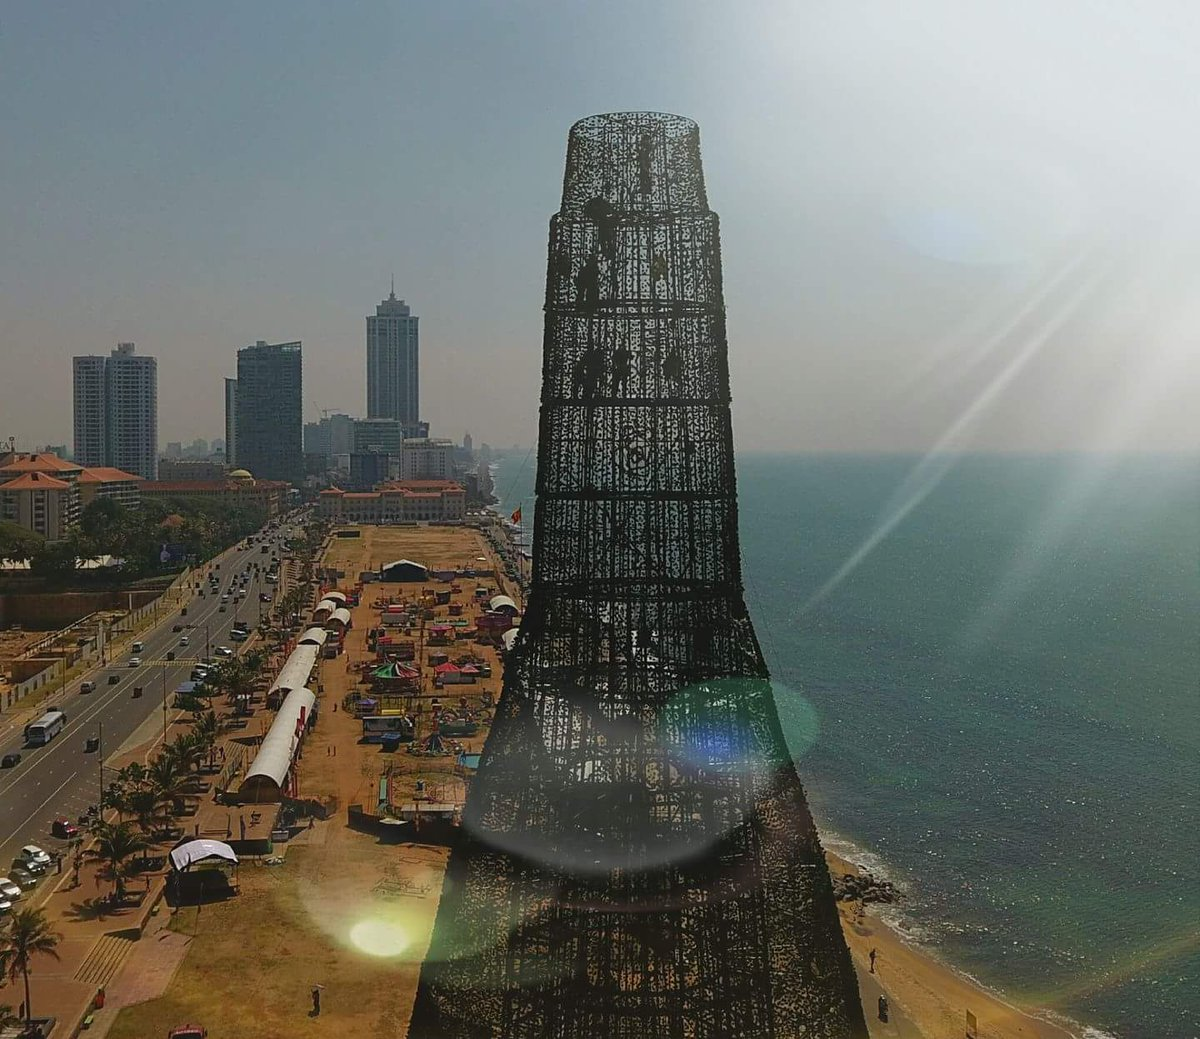 worlds tallest christmas tree complete opening at 7 tonight - Worlds Tallest Christmas Tree